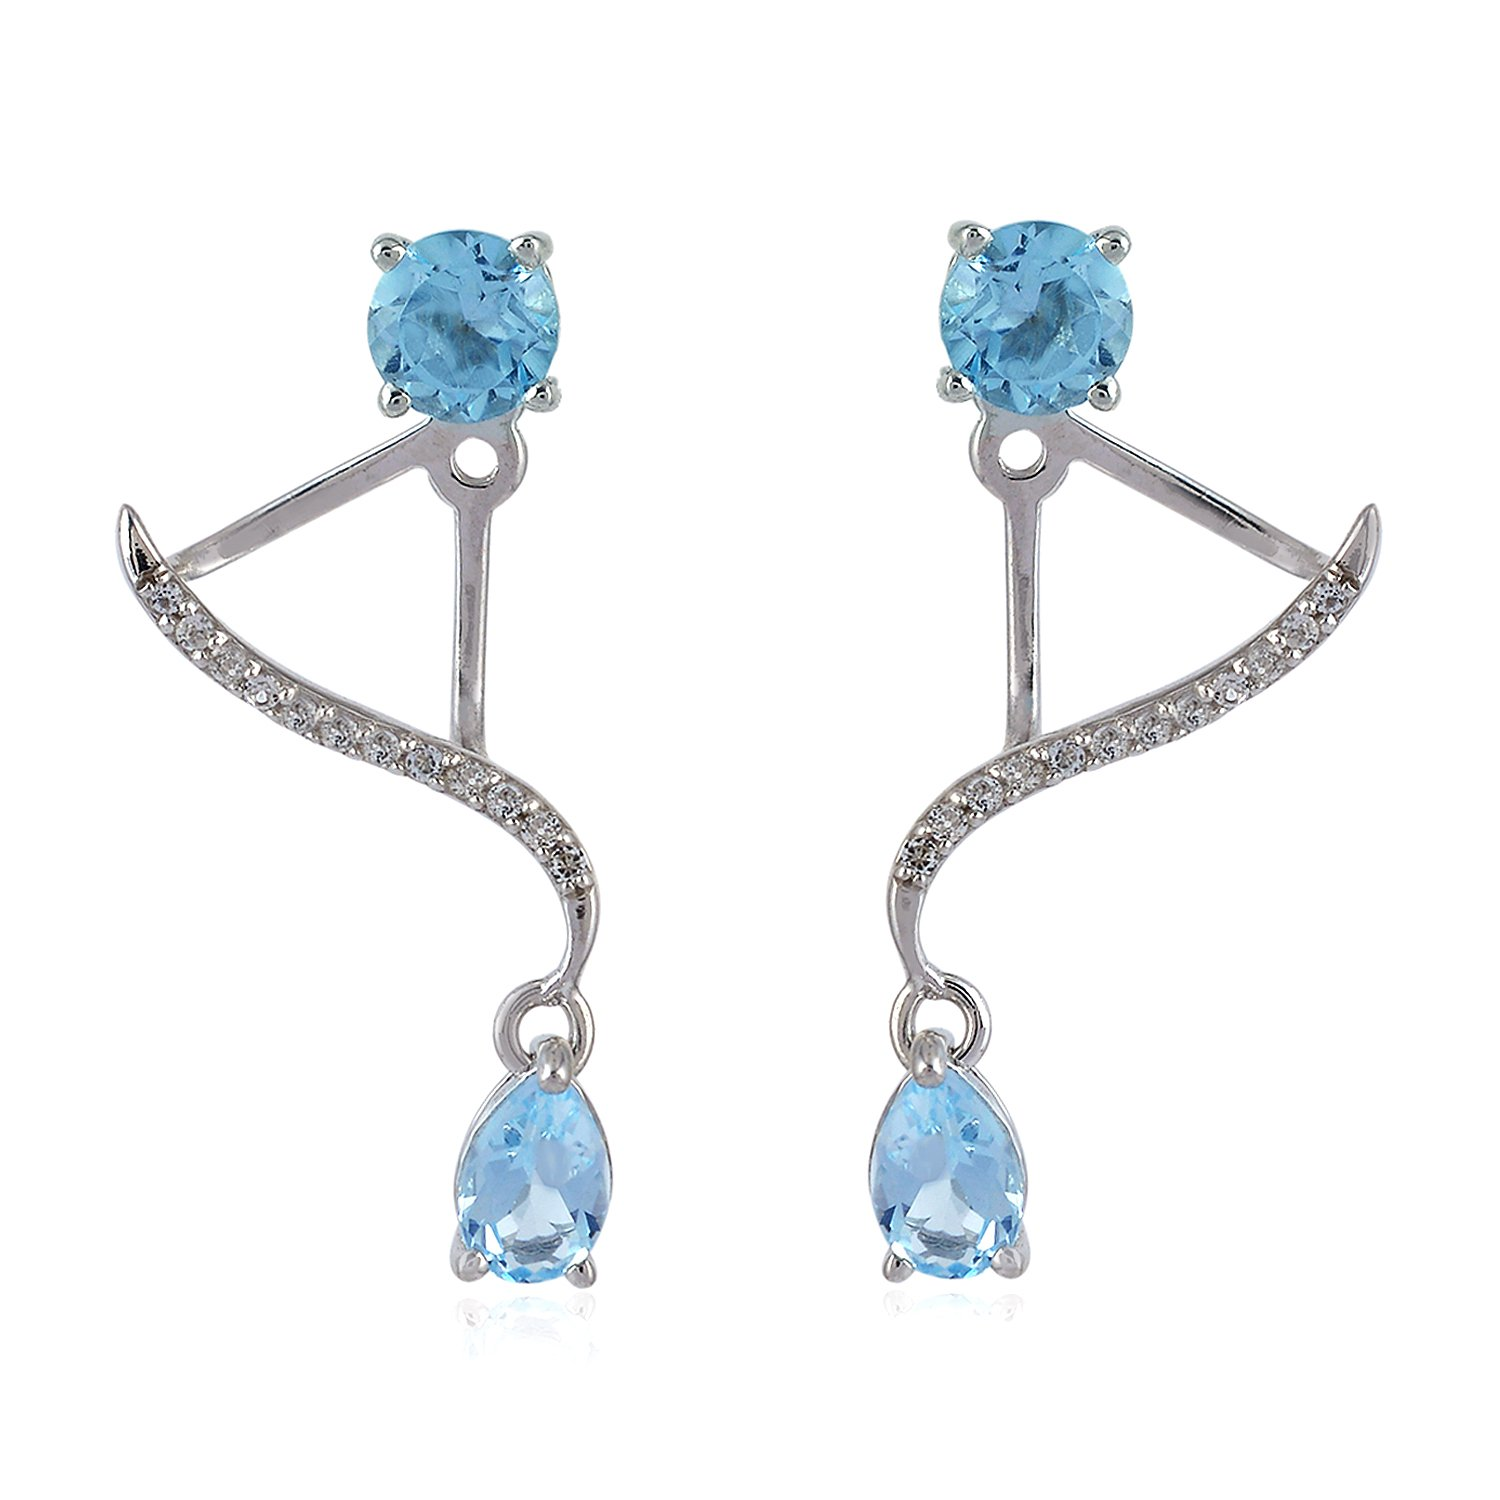 Mettlle Blue Topaz & White Topaz Sterling Silver 925 Ear Jacket Stud Earrings